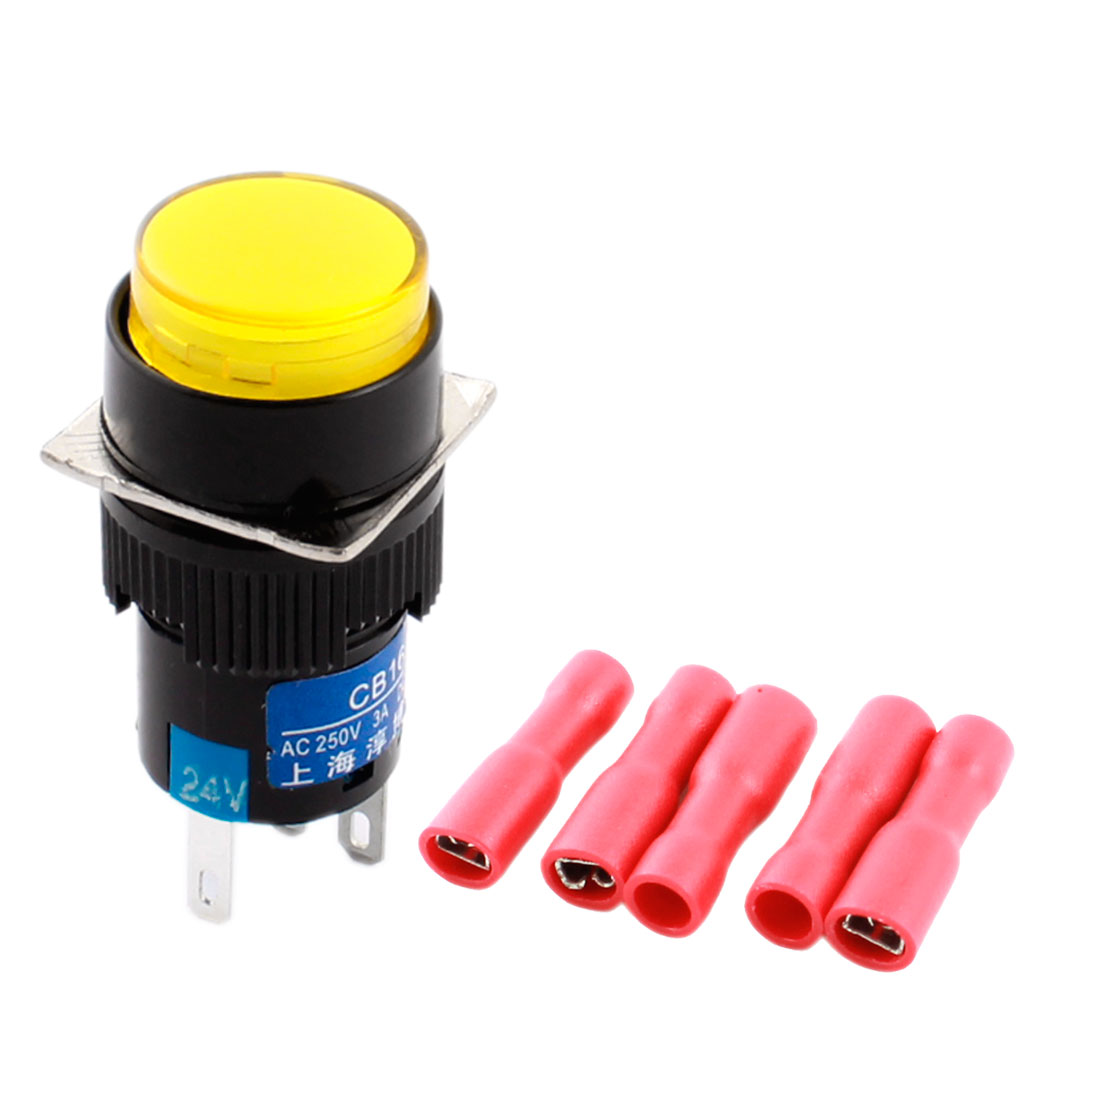 DC 24V Yellow Pilot Light 5Pins 16mm Threaded Panel Mounted SPDT Momentary Round Pushbutton Switch w 5 x Crimp Terminals